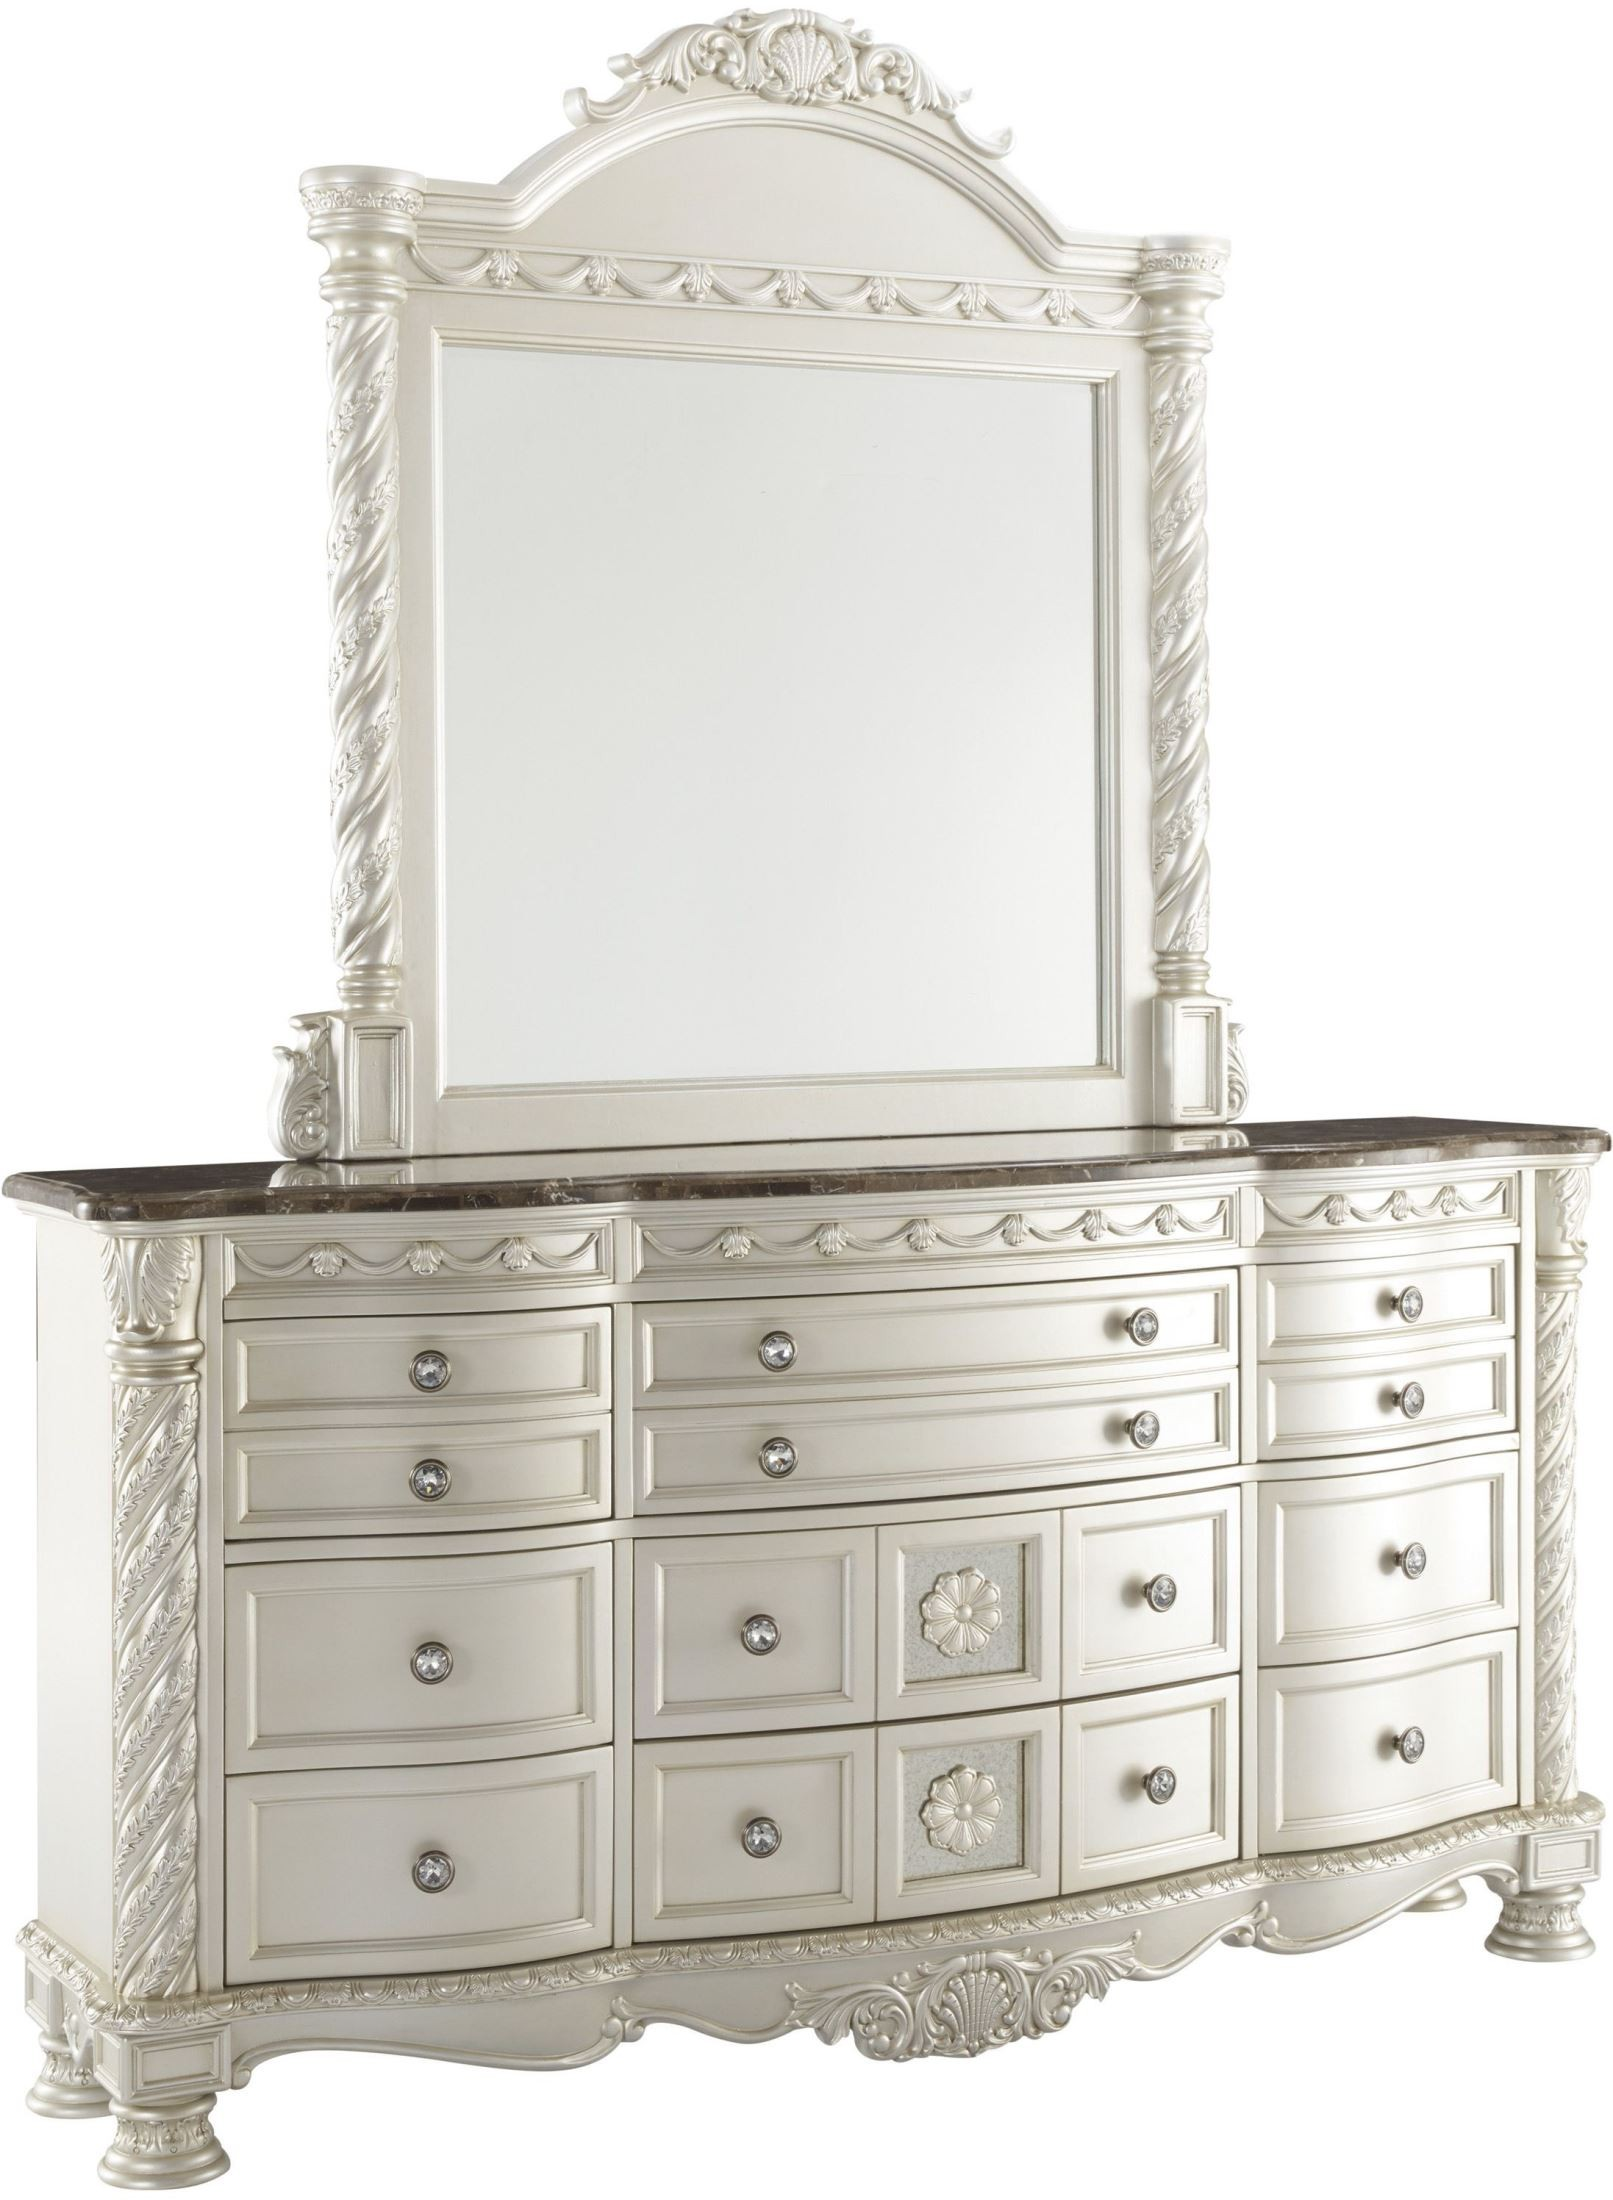 Cassimore North Shore Pearl Silver Bedroom Mirror From